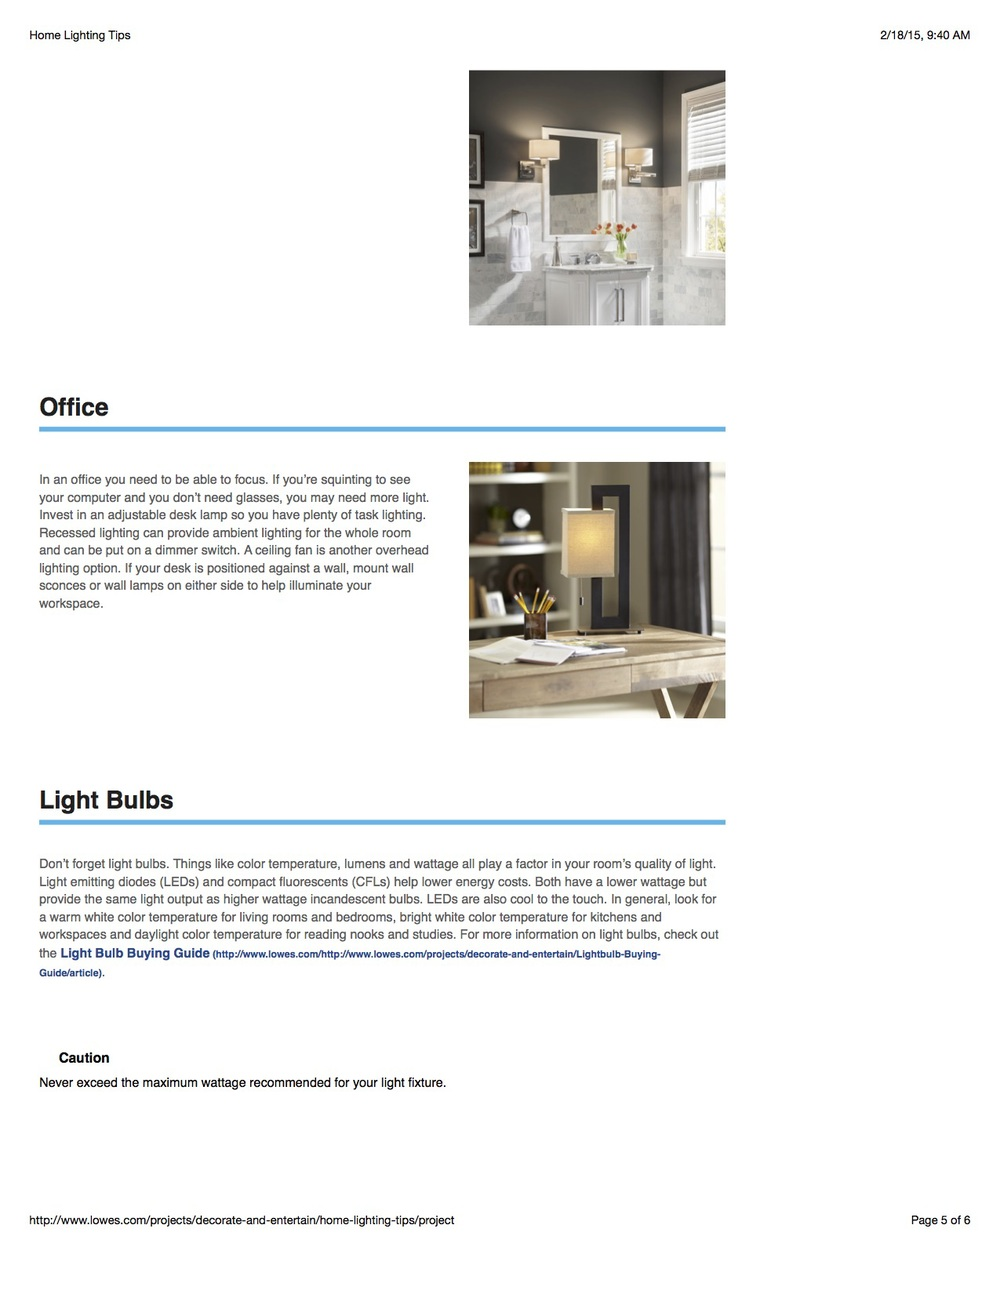 Home Lighting Tips_5.jpg